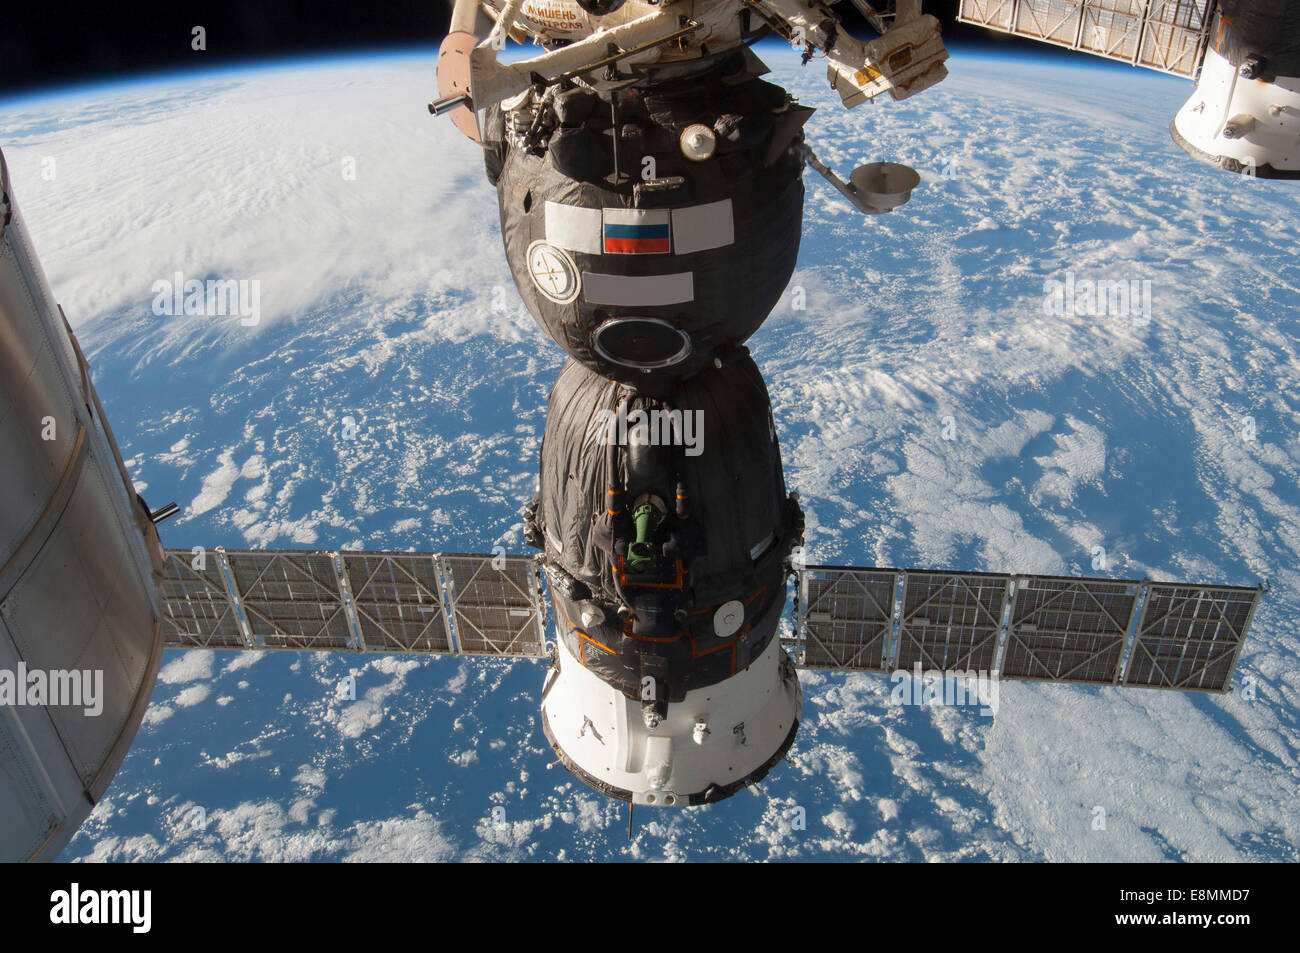 November 12, 2013 - The Russian Soyuz TMA-11M spacecraft docked to the Rassvet or Mini-Research Module 1 (MRM-1). - Stock Image